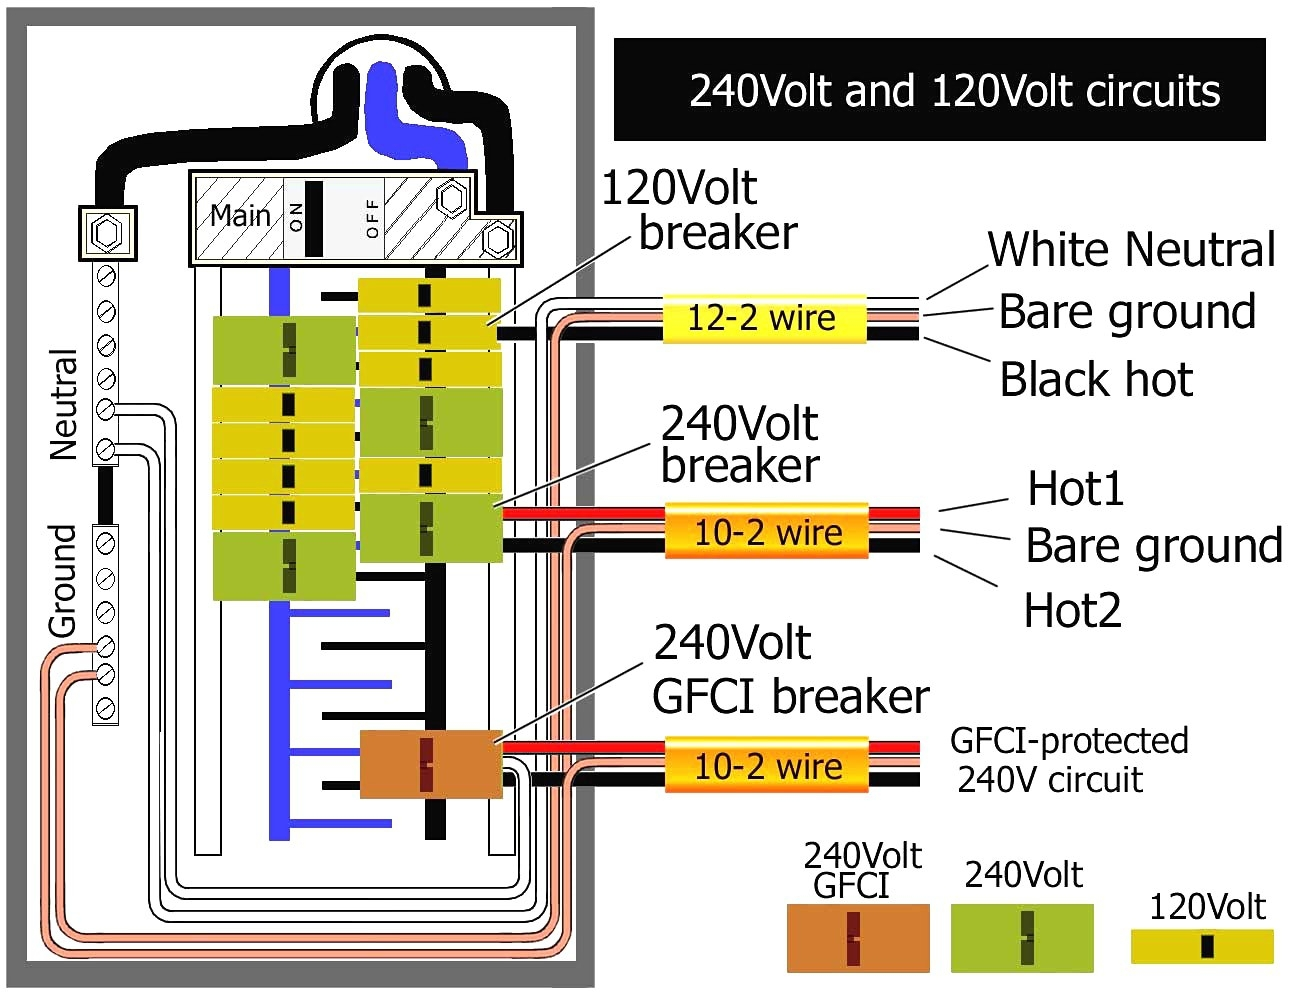 hight resolution of two pole gfci breaker wiring diagram gfci wiring diagram best leviton wiring diagrams download with